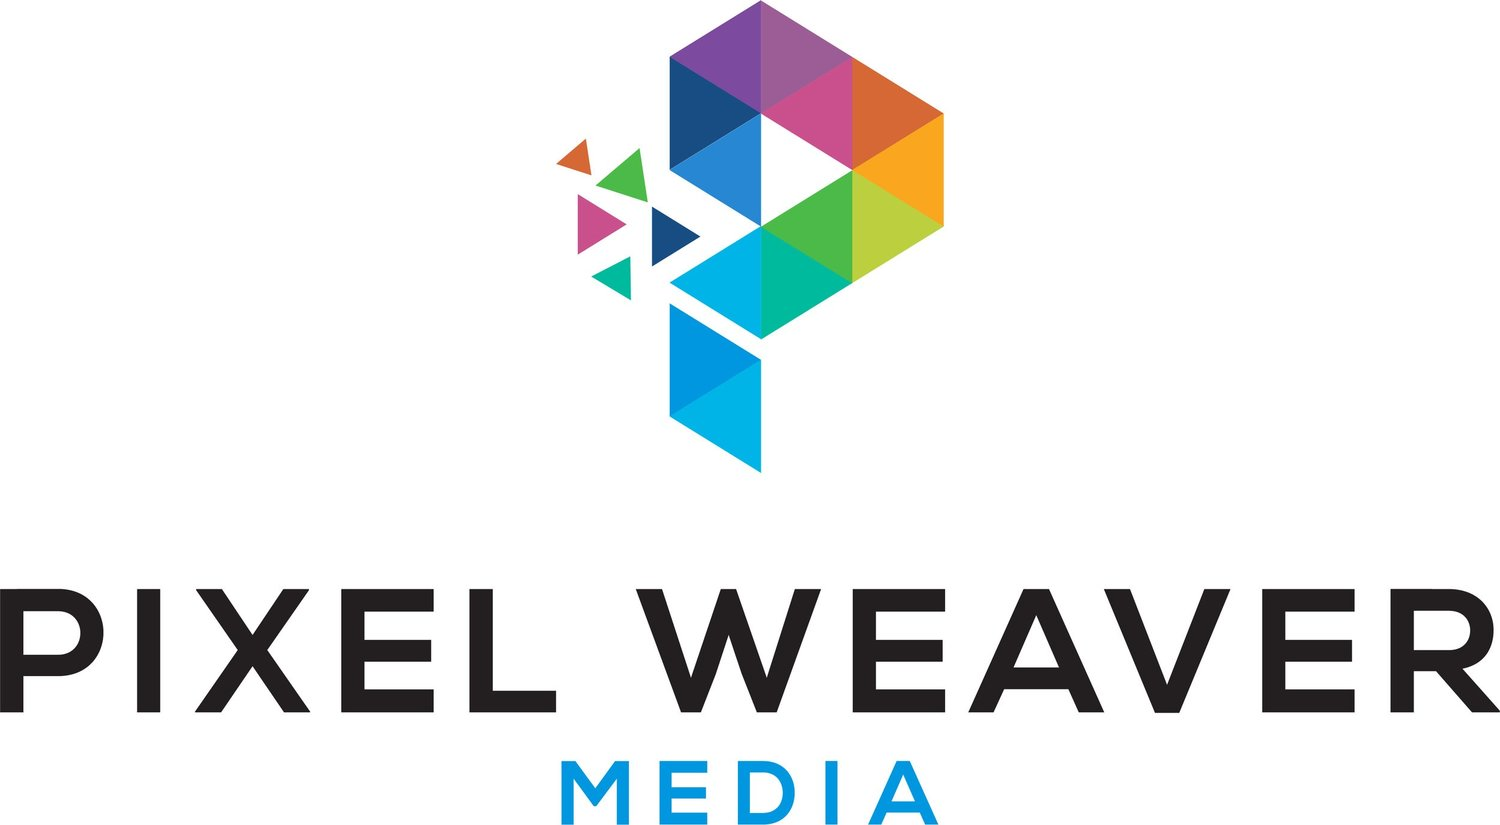 Pixel Weaver Media